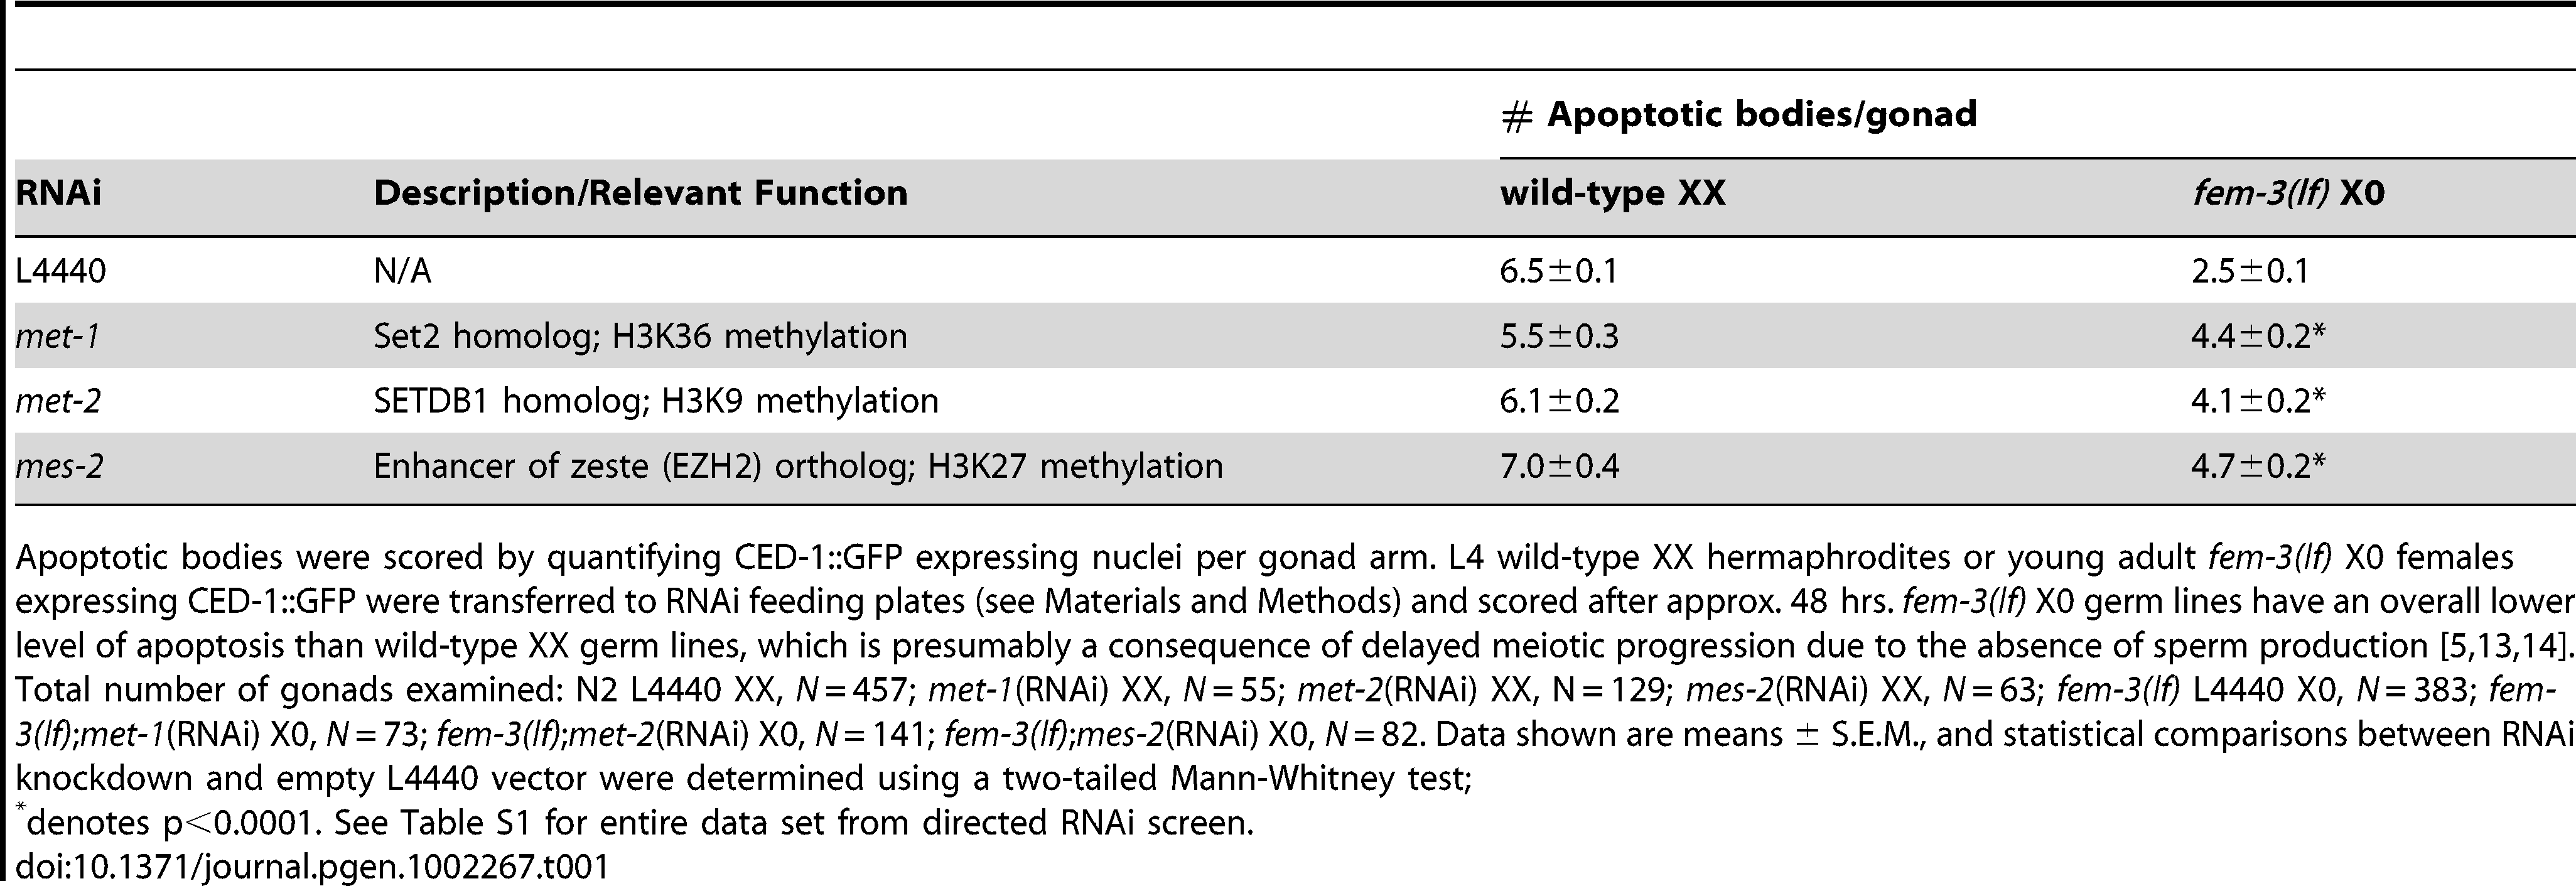 Absence of a subset of SET-domain HMTases results in elevated apoptosis in the heterogametic (X0) germ line.